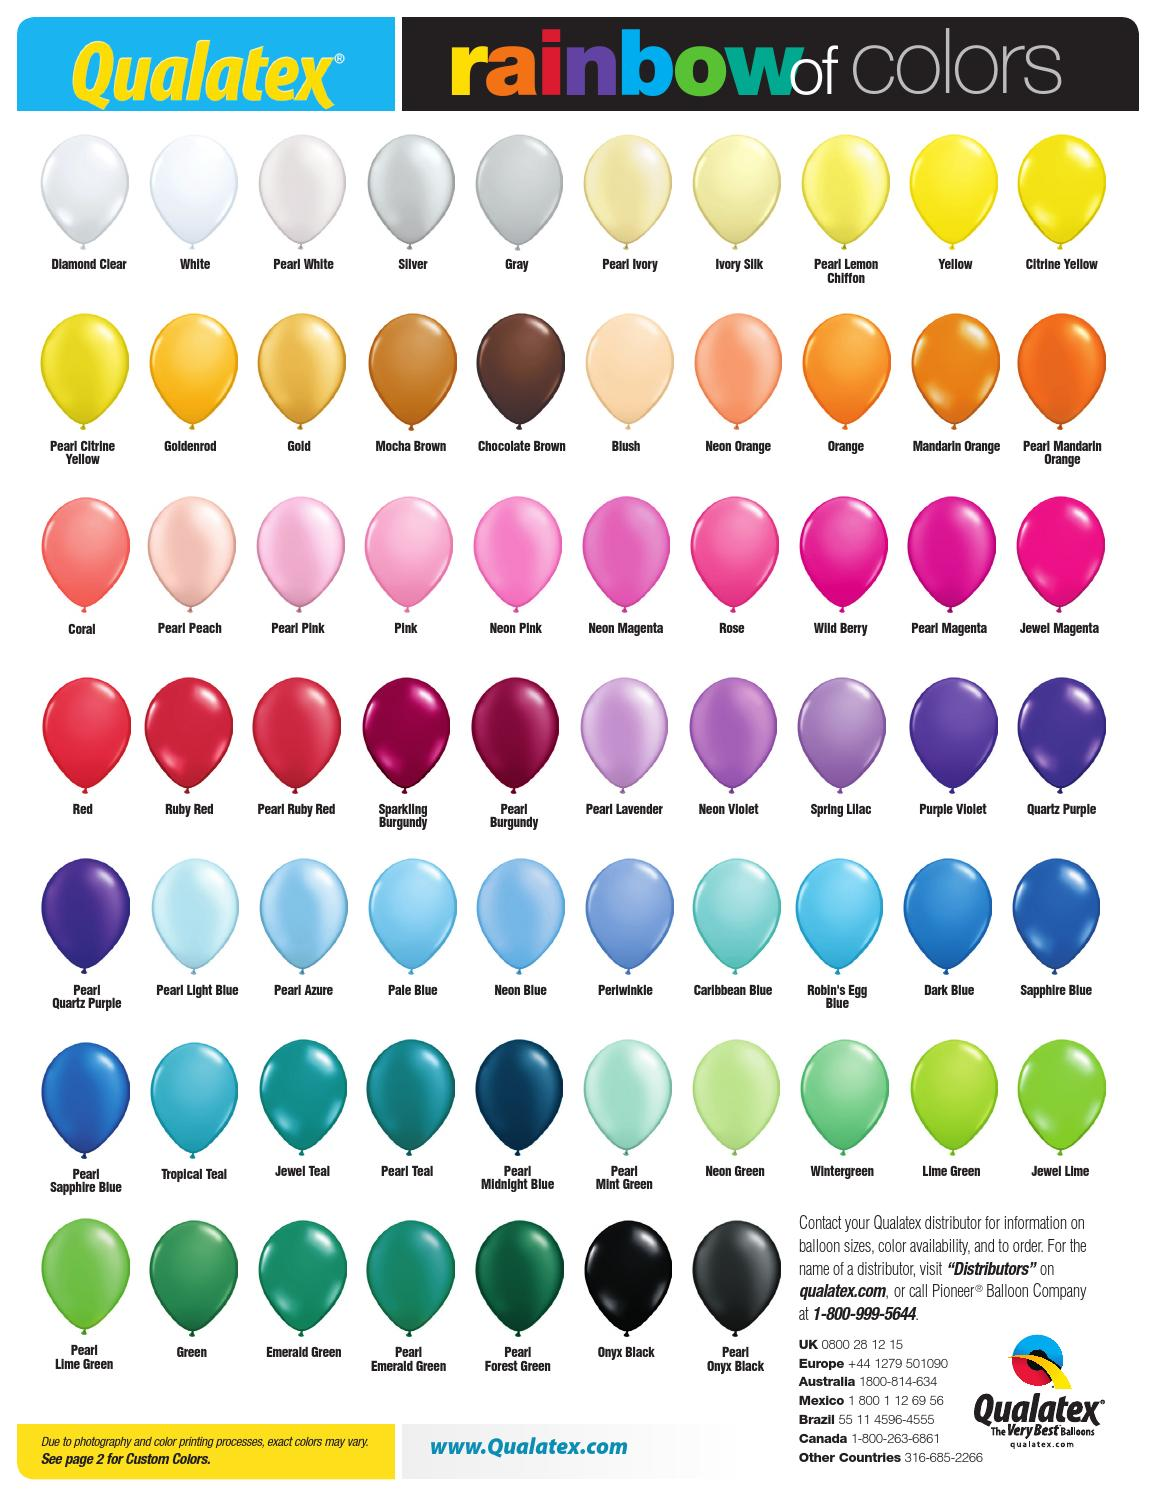 Us Rainbow Of Colors Chart 2015 By Pioneer Balloon Company